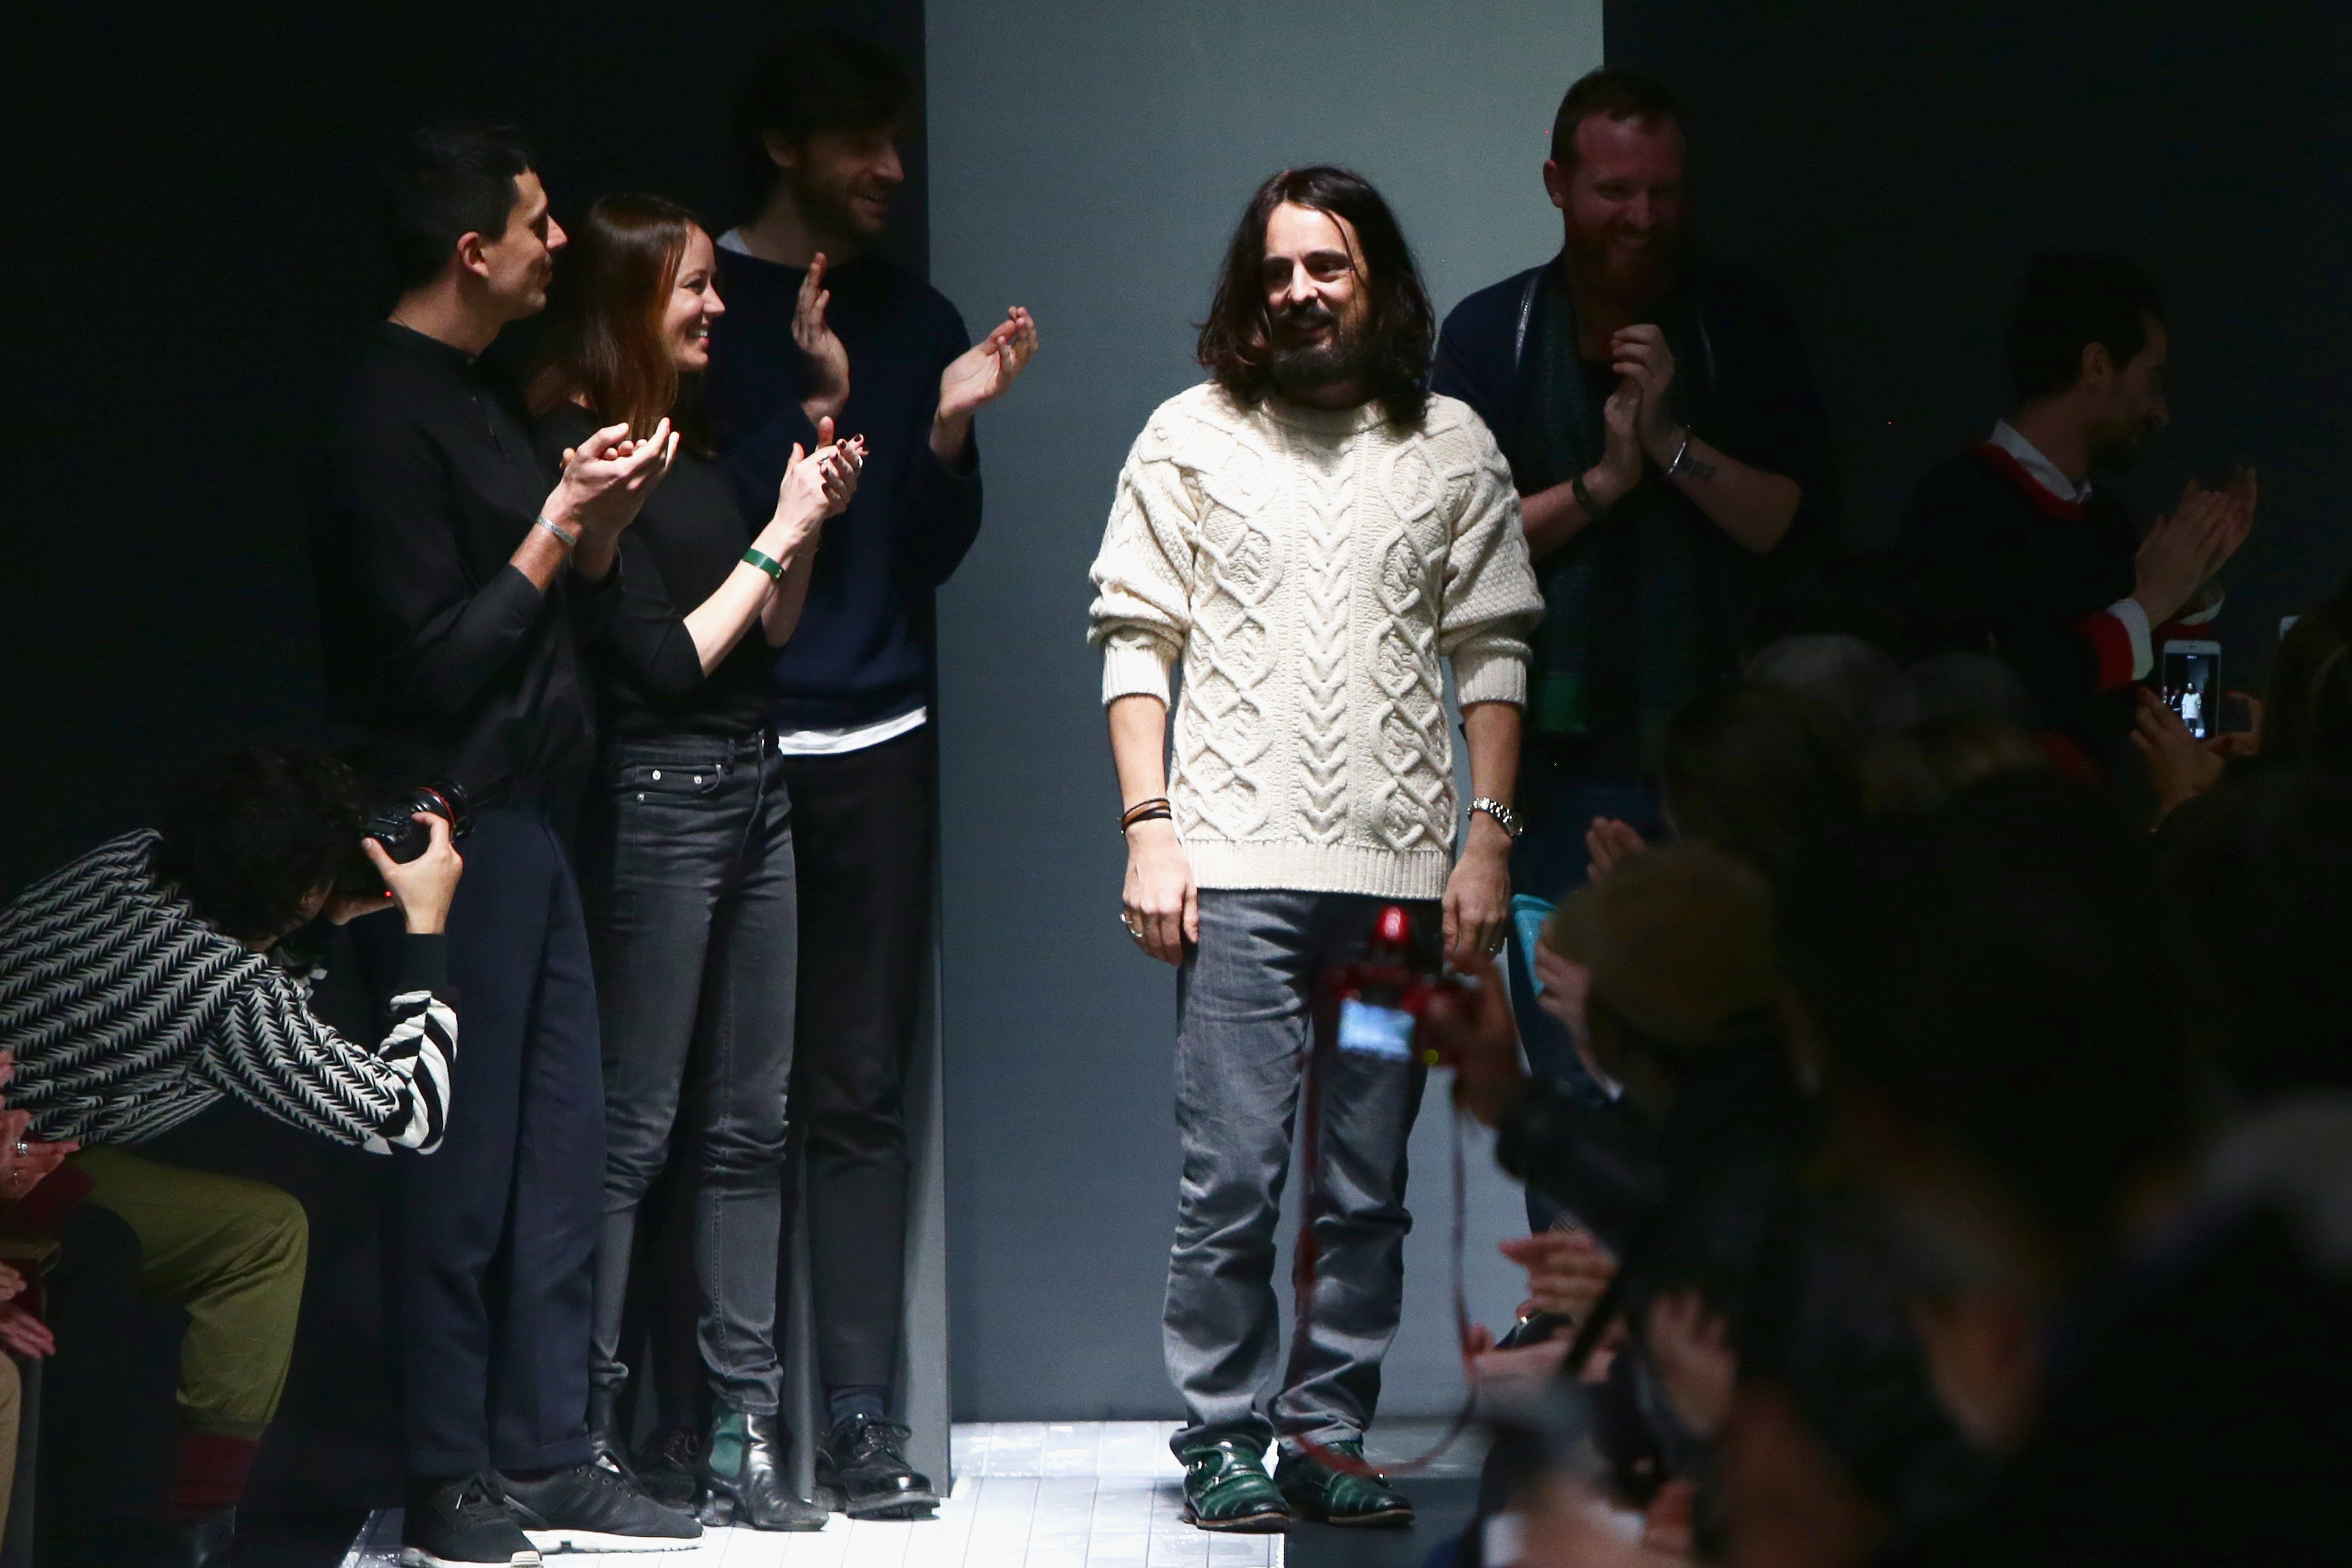 Alessandro Michele - Novo Diretor Criativo da Gucci foto: Getty images